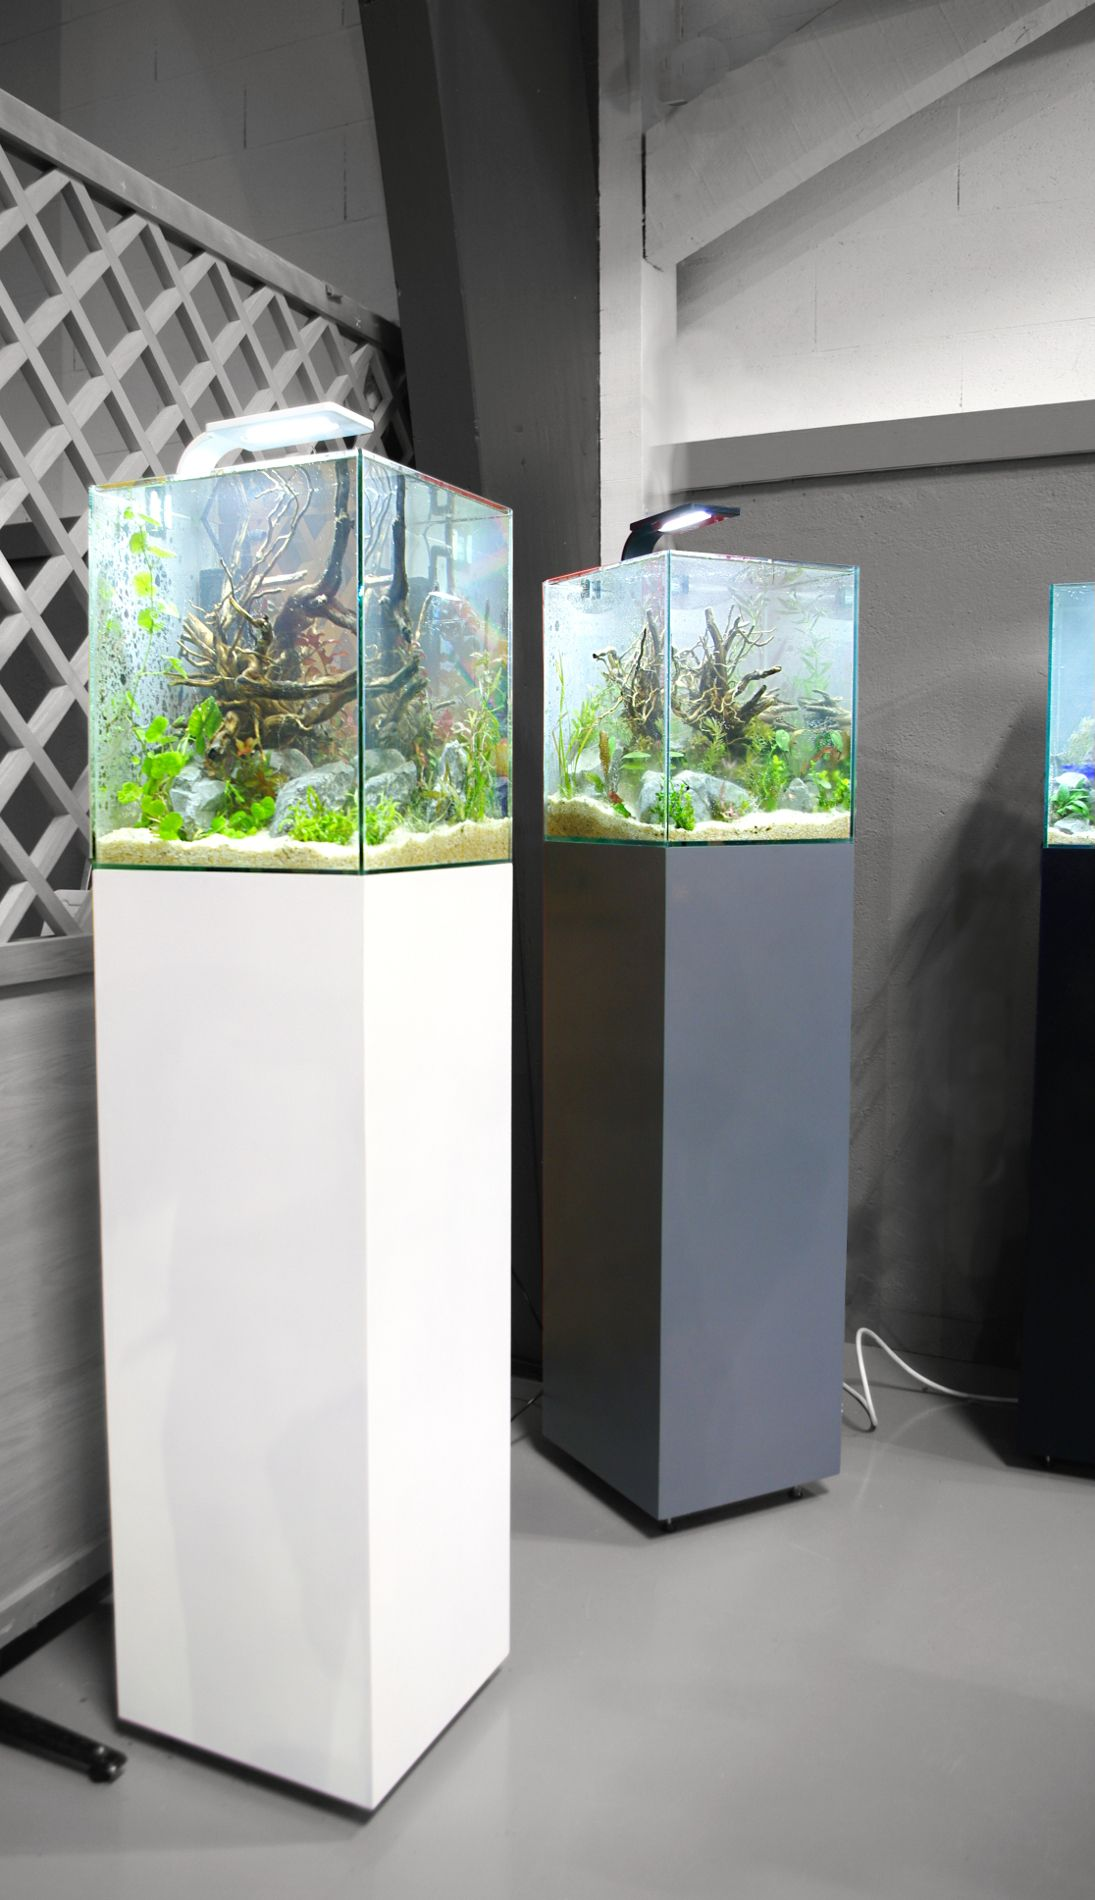 aquariums design 30l aquarium pinterest aquariums fish aquariums and aquarium ideas. Black Bedroom Furniture Sets. Home Design Ideas